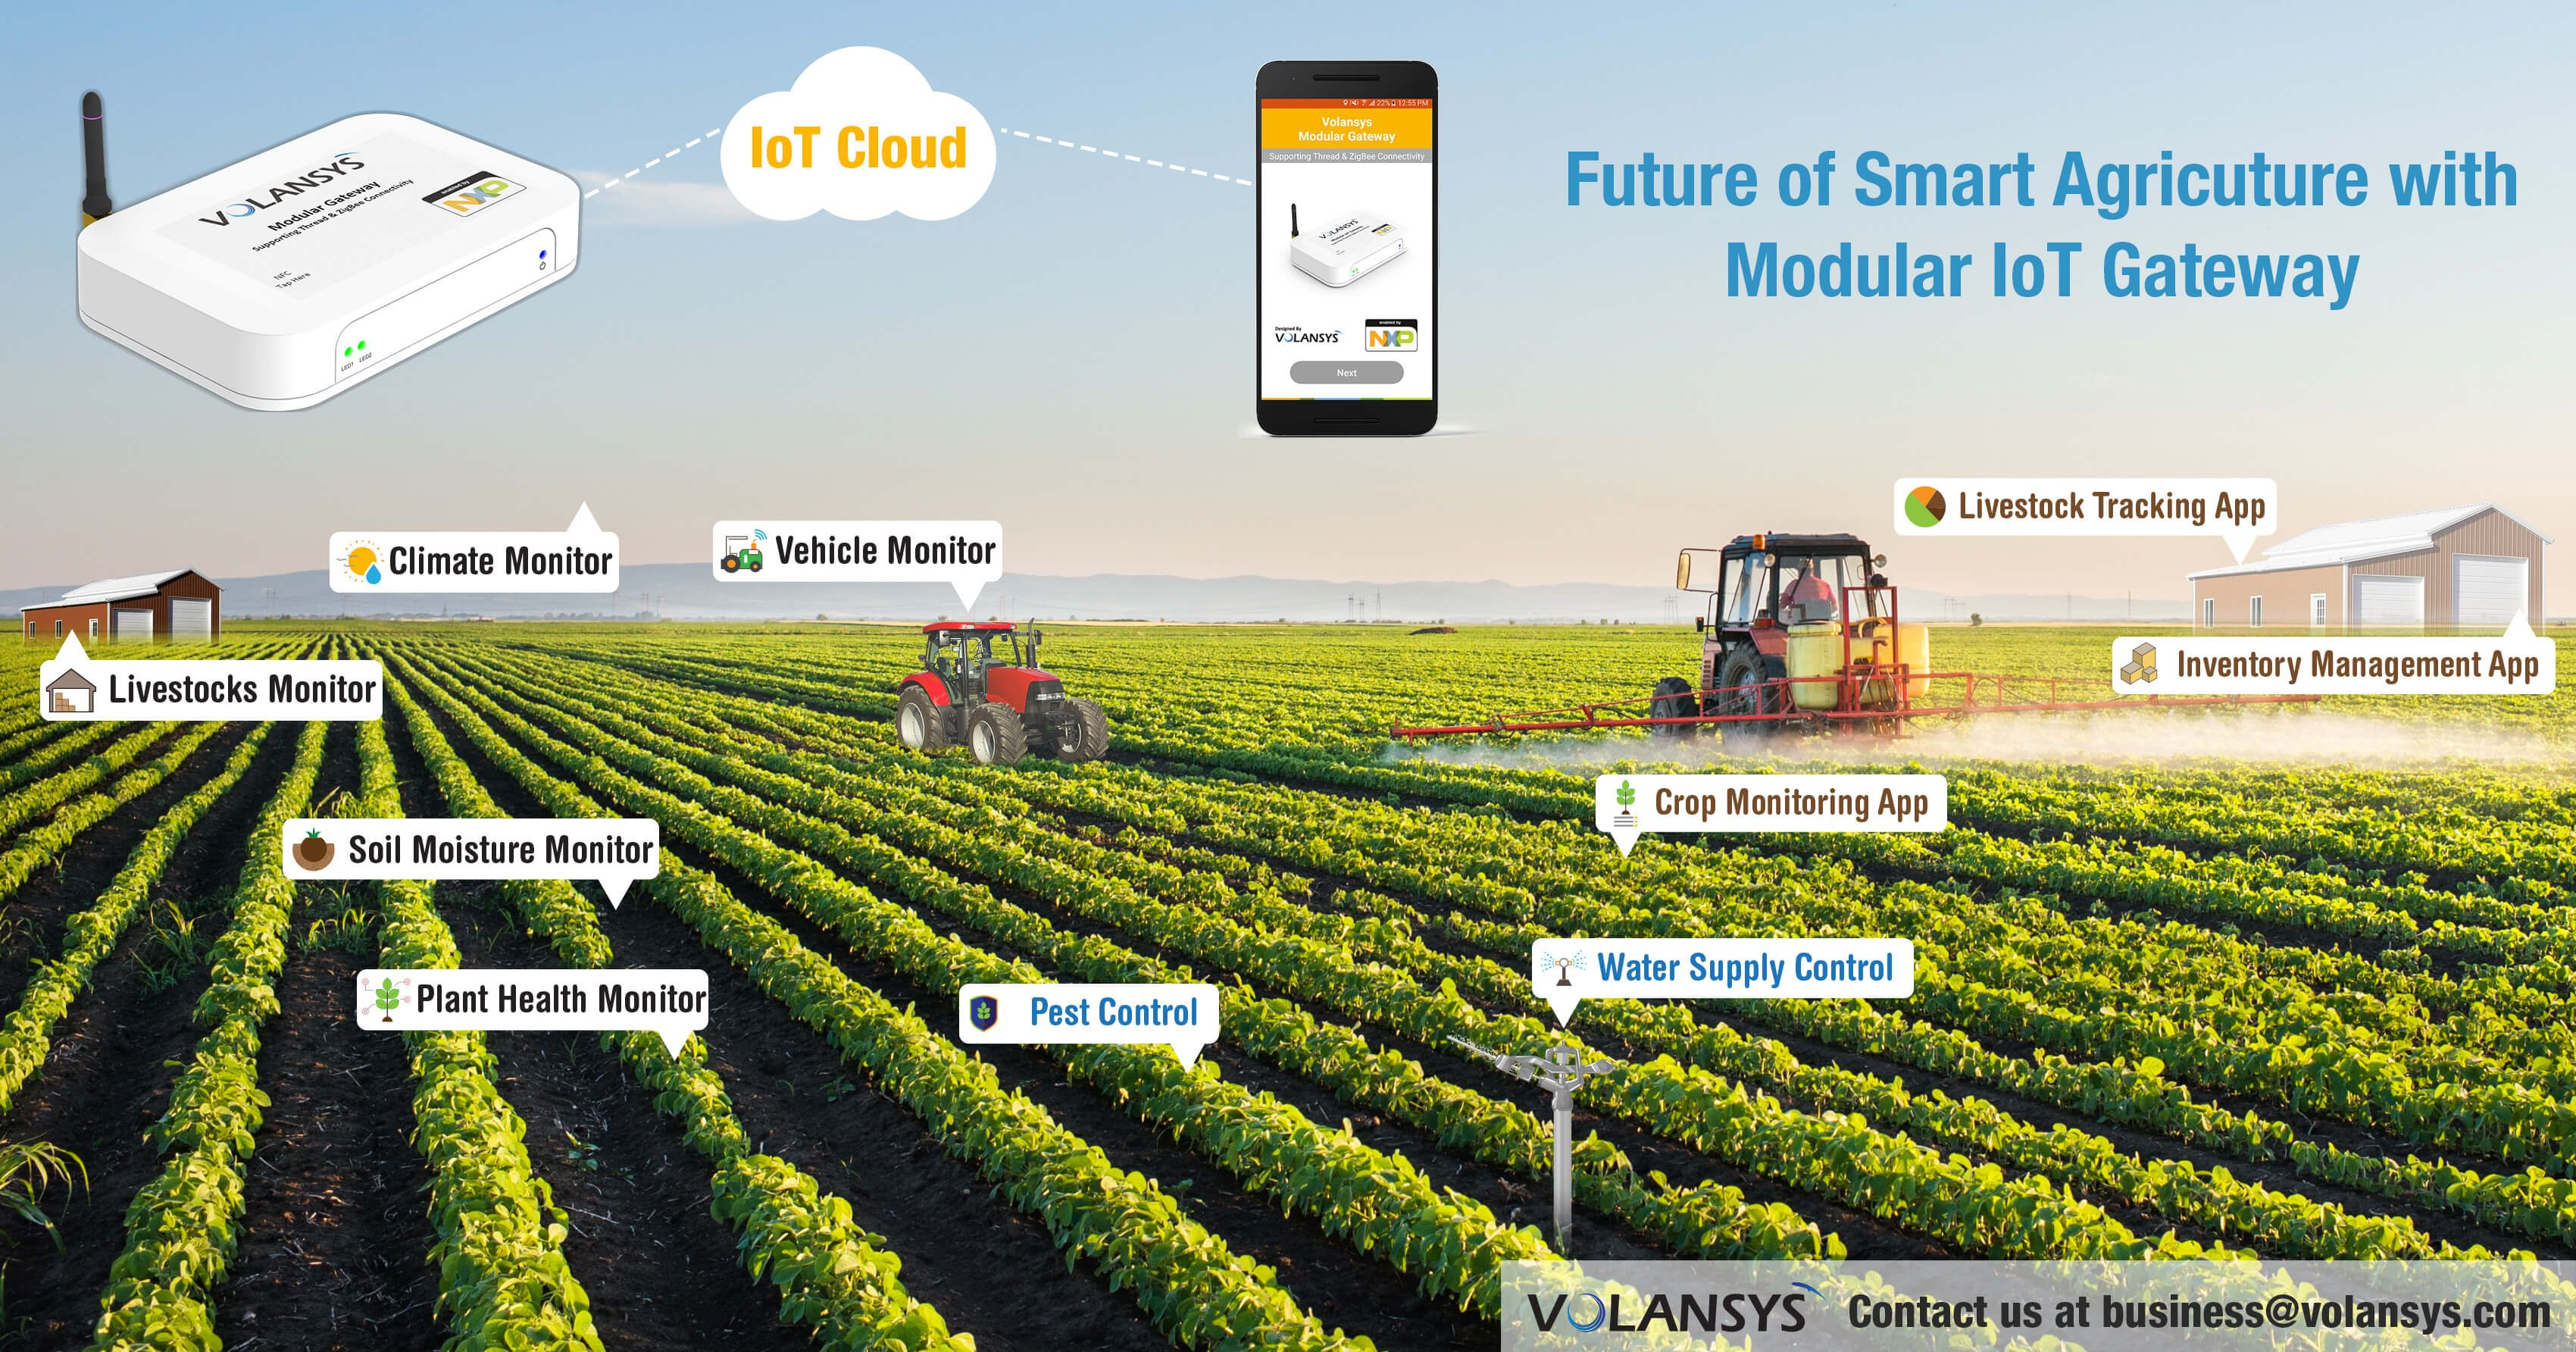 Future Of Smart Agriculture With Modular Iot Gateway